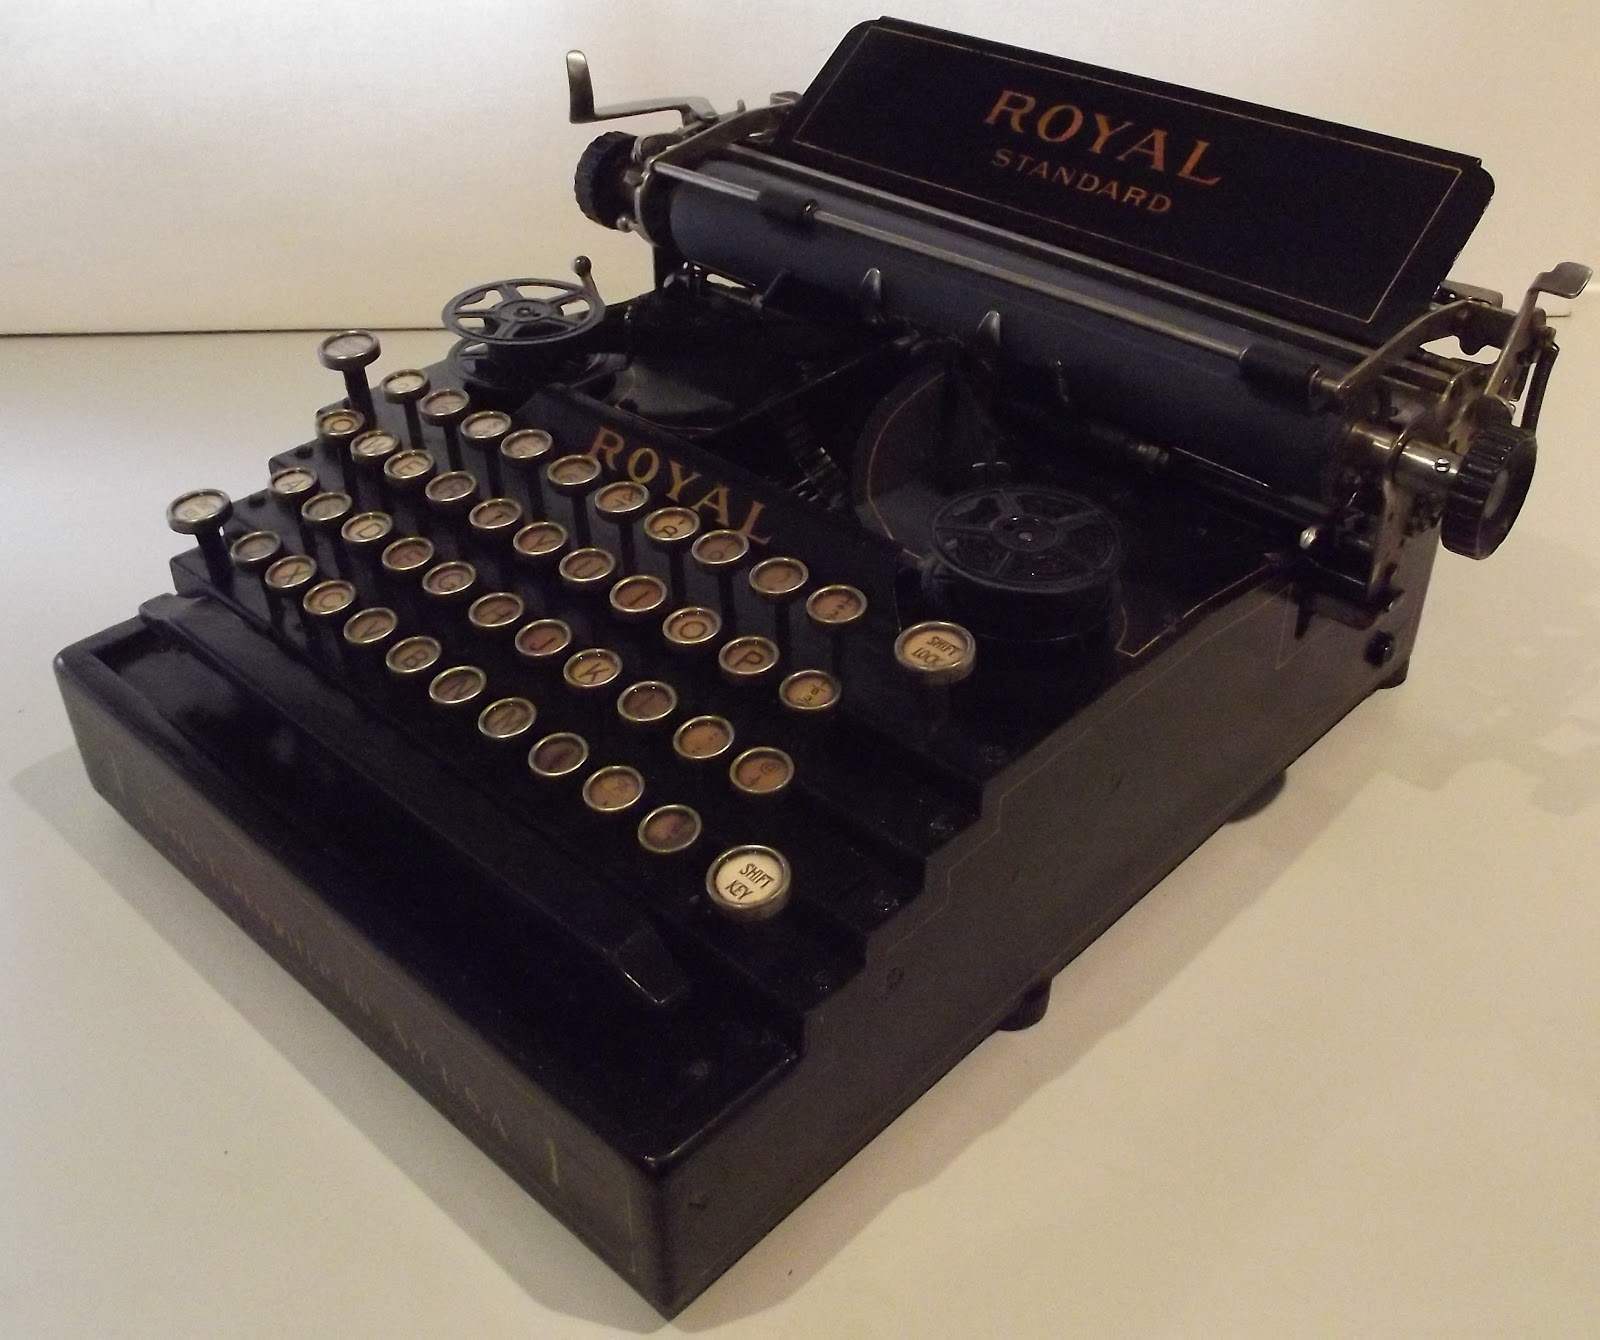 oz Typewriter: The Sorry Saga of the Royal Standard 1 Typewriter